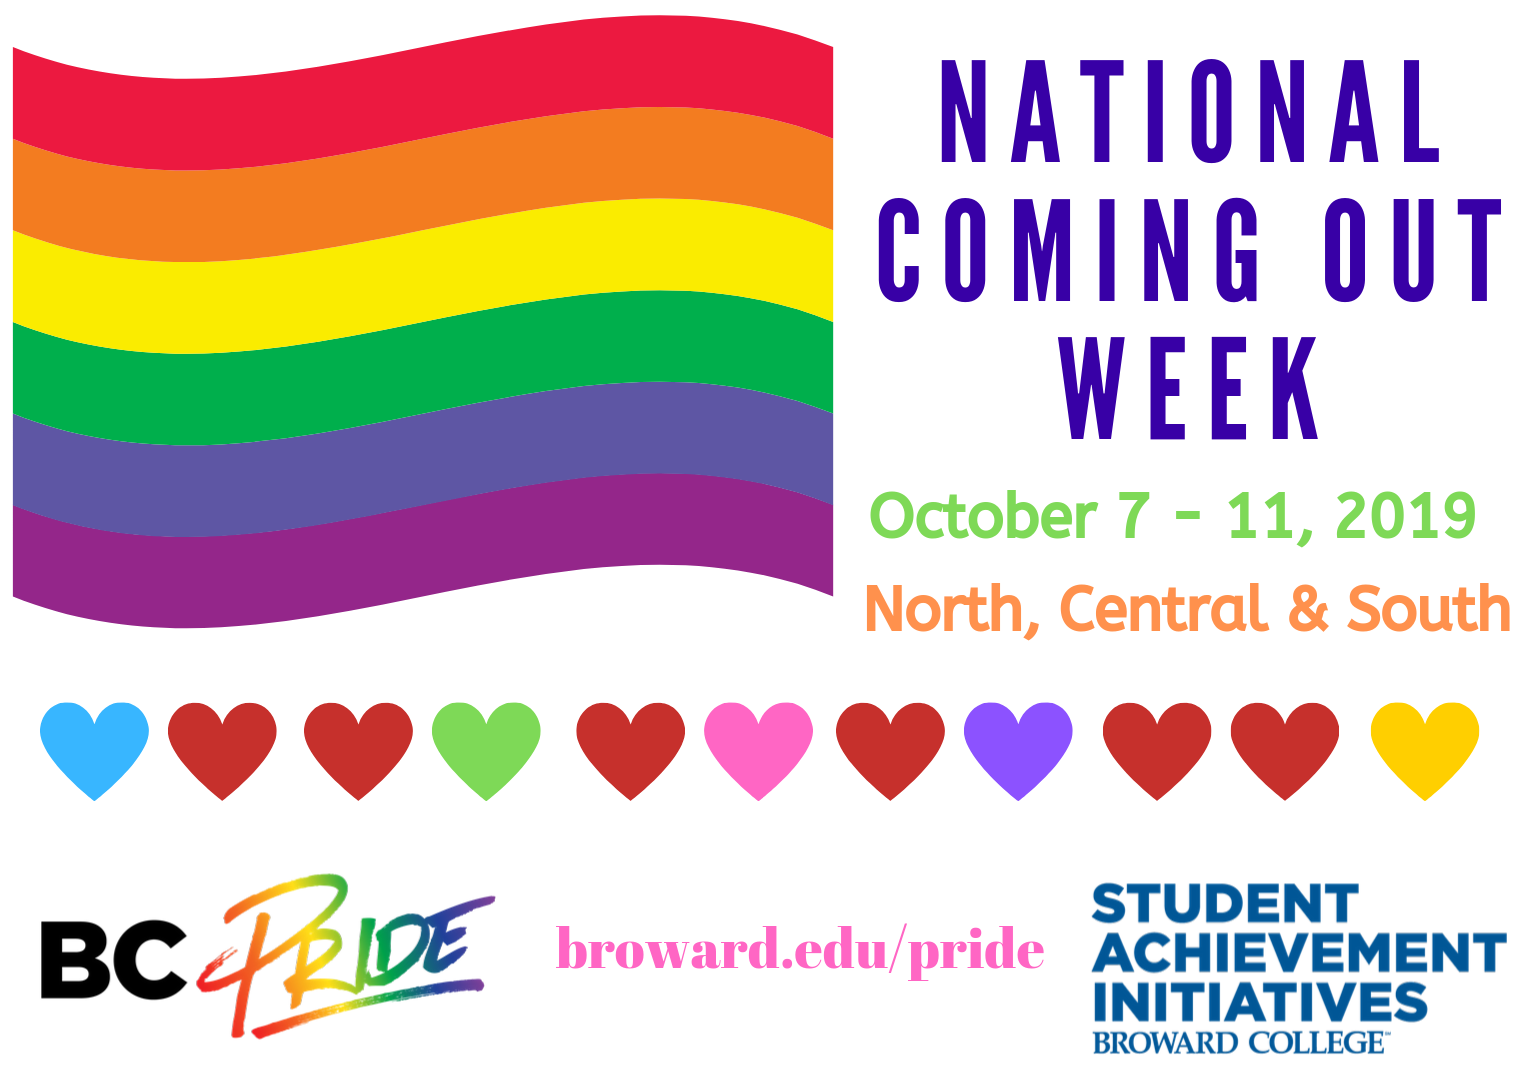 National Coming Out Week - October 7 - 11, 2019